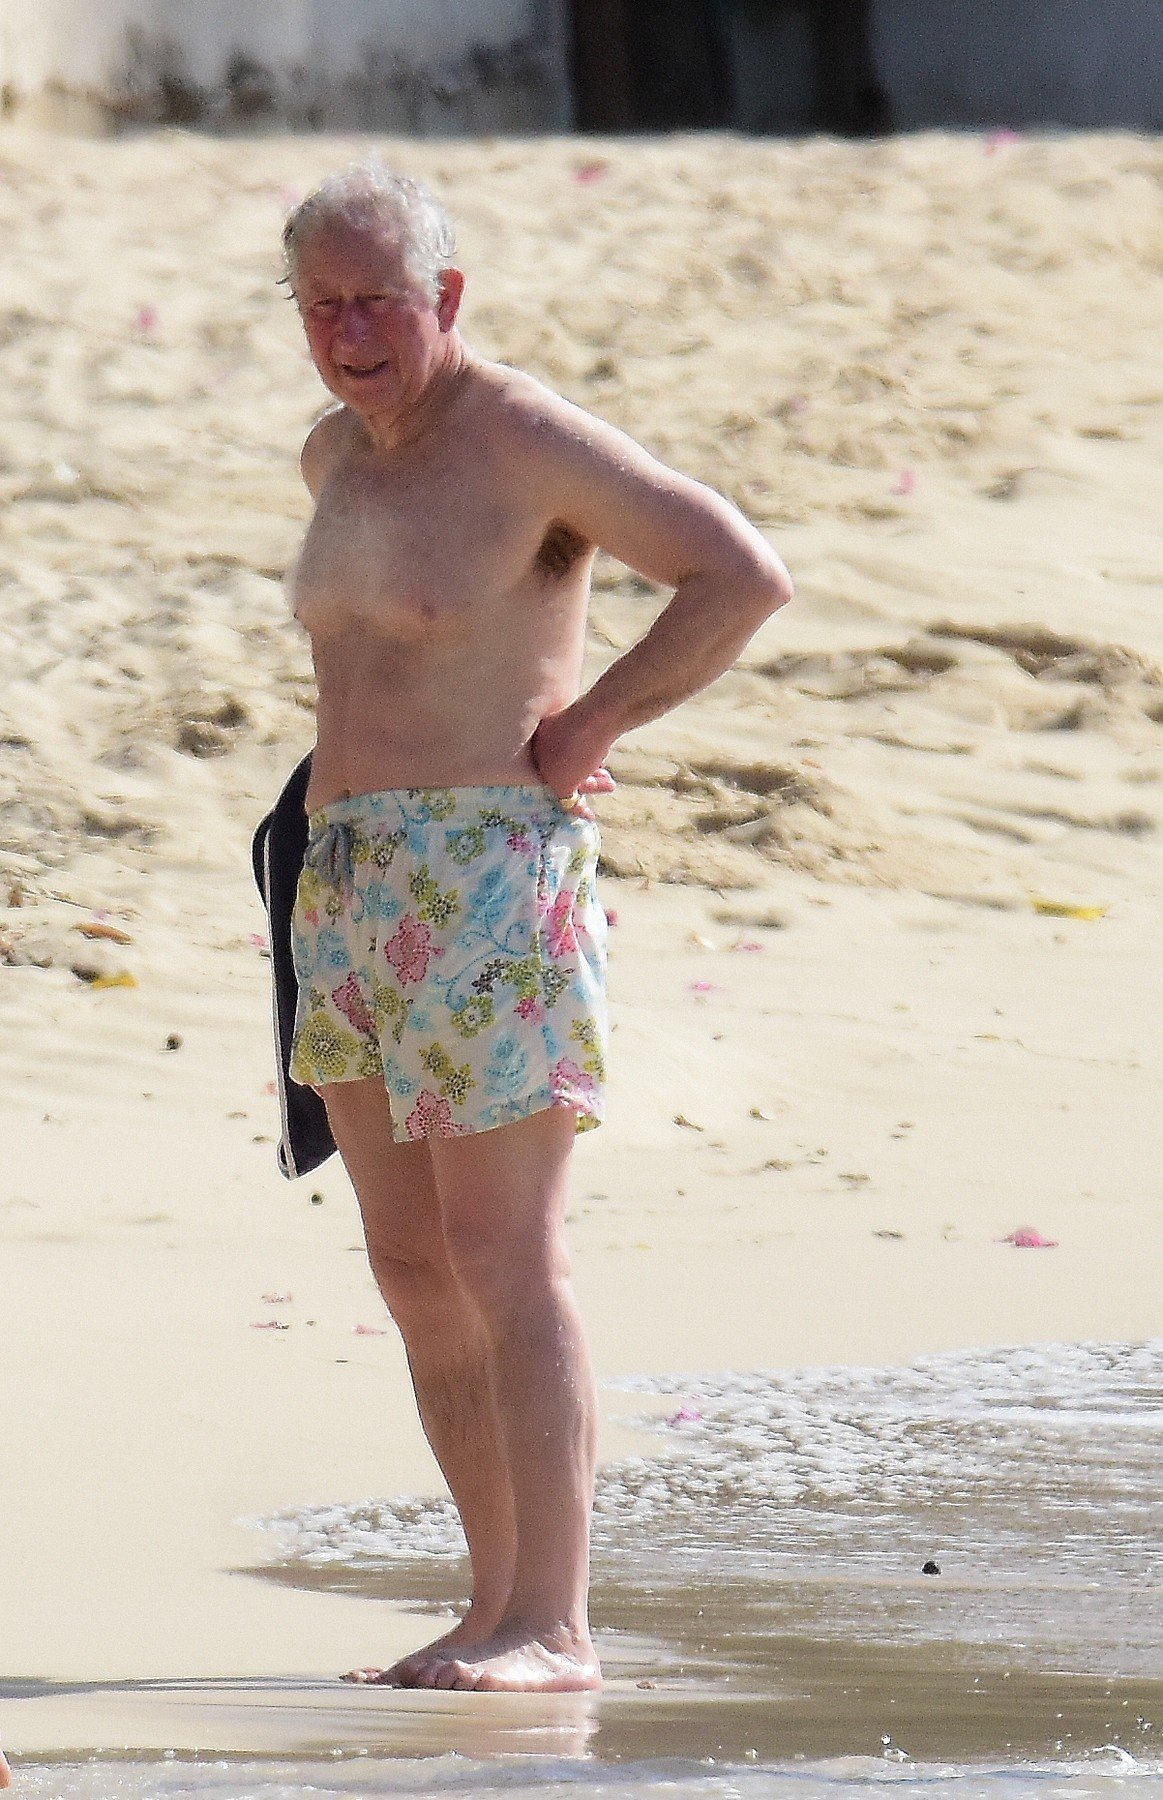 *PREMIUM EXCLUSIVE* Prince Charles and wife Camilla, Duchess of Cornwall,  pictured on the beach in Barbados. The Prince of Wales, 70, showed off his trim frame in natty floral trunks while Camilla, 71, wore an aqua-blue one-piece swimsuit. Camilla and Charles are touring the Caribbean representing the Queen at the behest of the Foreign Office. The highlight of their trip is a four-day tour of Cuba beginning on March 24 - the first by members of the monarchy. 18 Mar 2019, Image: 420538257, License: Rights-managed, Restrictions: World Rights, Model Release: no, Credit line: Profimedia, Mega Agency